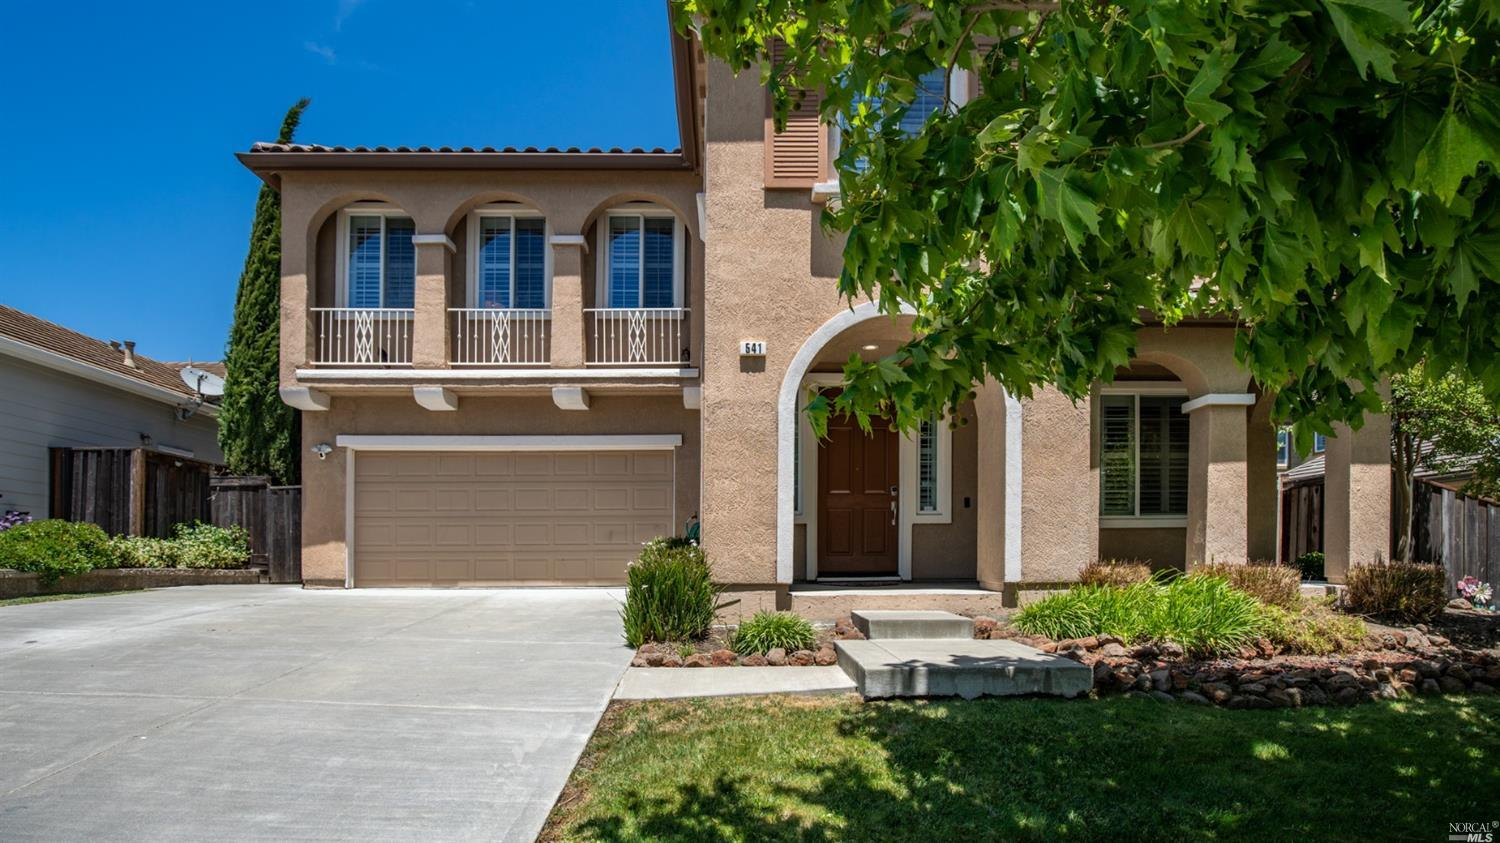 Beautiful home in the heart of Green Valley. Pride of ownership. This home is over 3000 sq ft and in